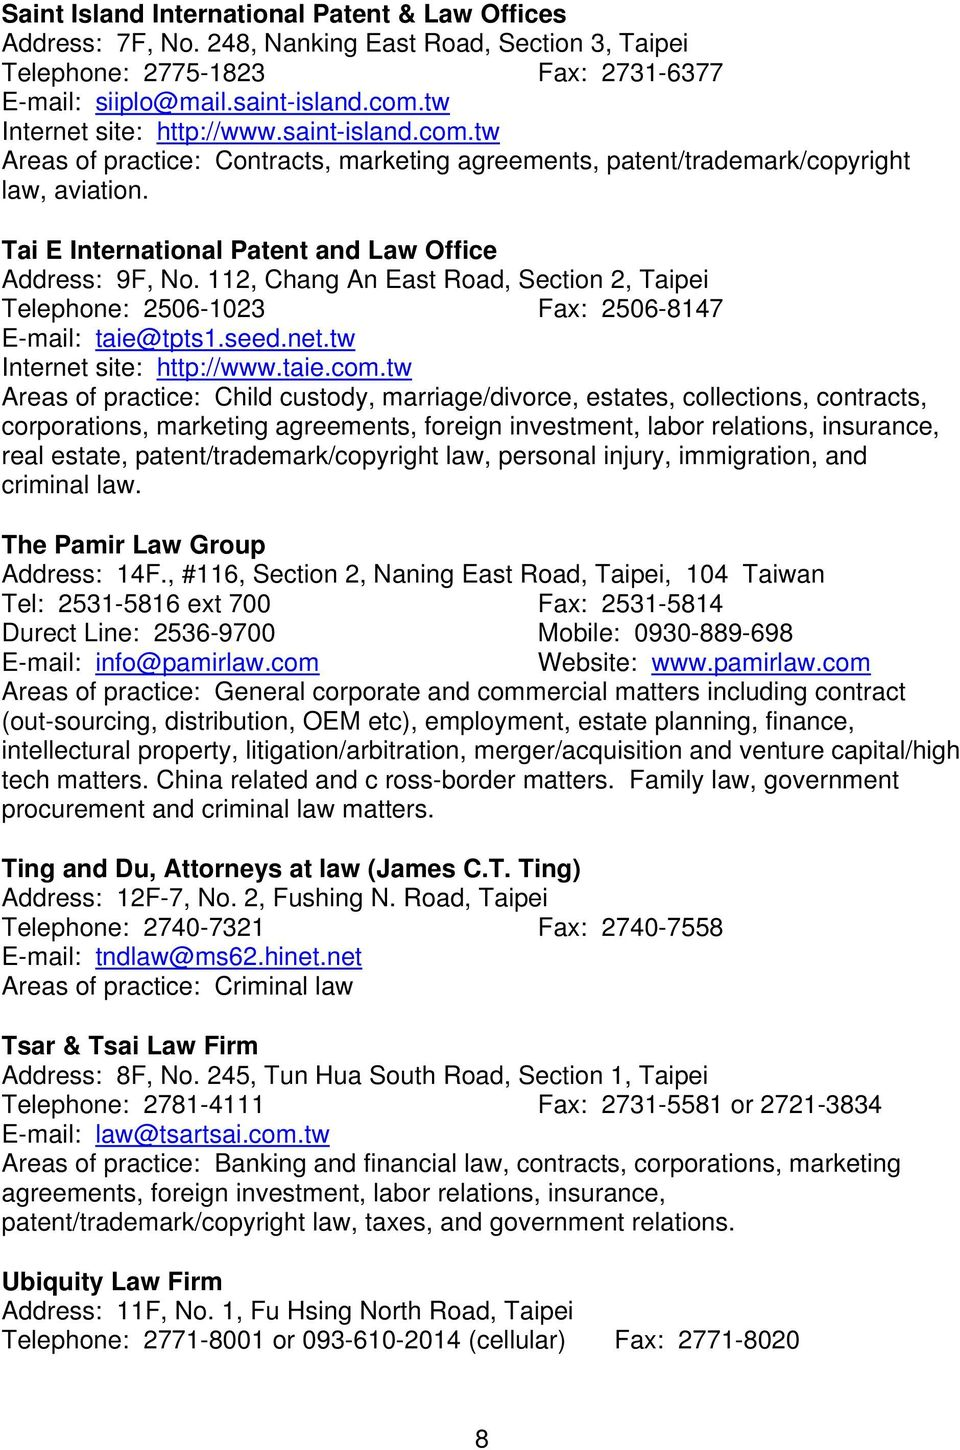 Tai E International Patent and Law Office Address: 9F, No. 112, Chang An East Road, Section 2, Taipei Telephone: 2506-1023 Fax: 2506-8147 E-mail: taie@tpts1.seed.net.tw Internet site: http://www.taie.com.